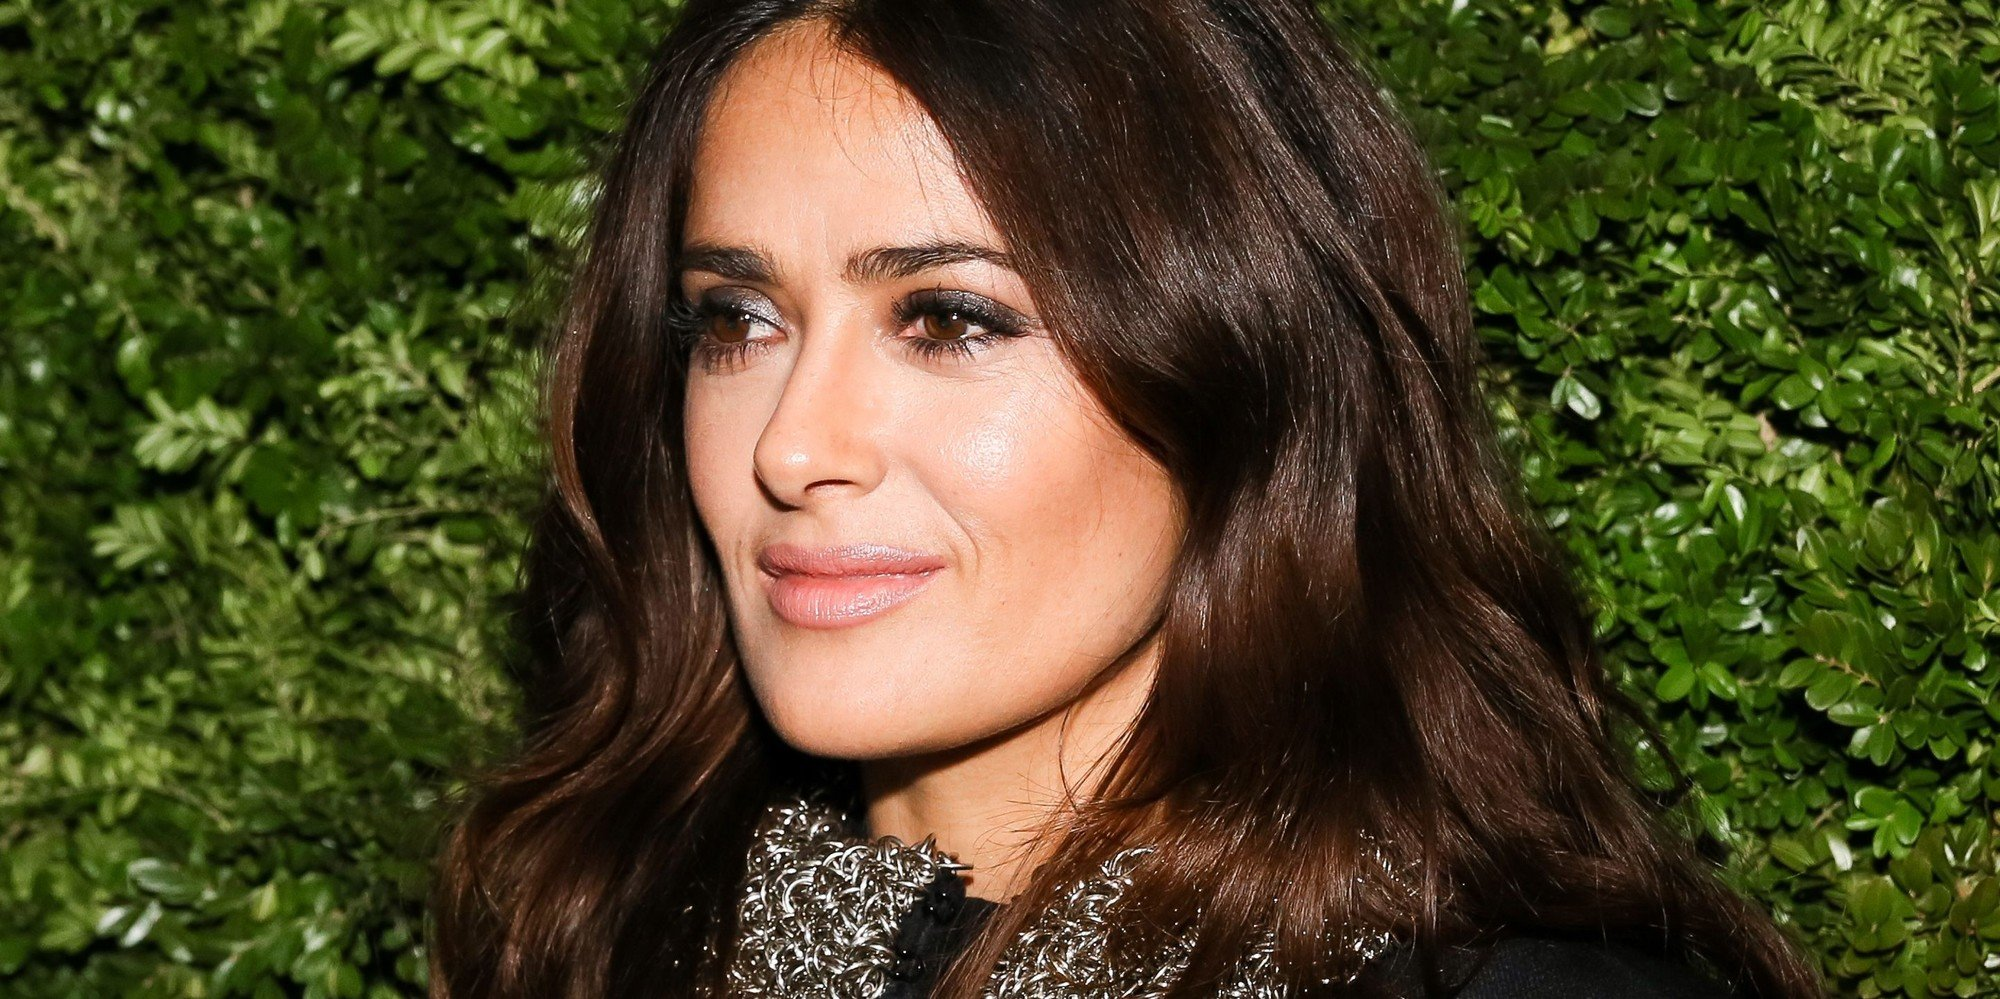 Salma Hayek Looks Like A Totally Different Person With